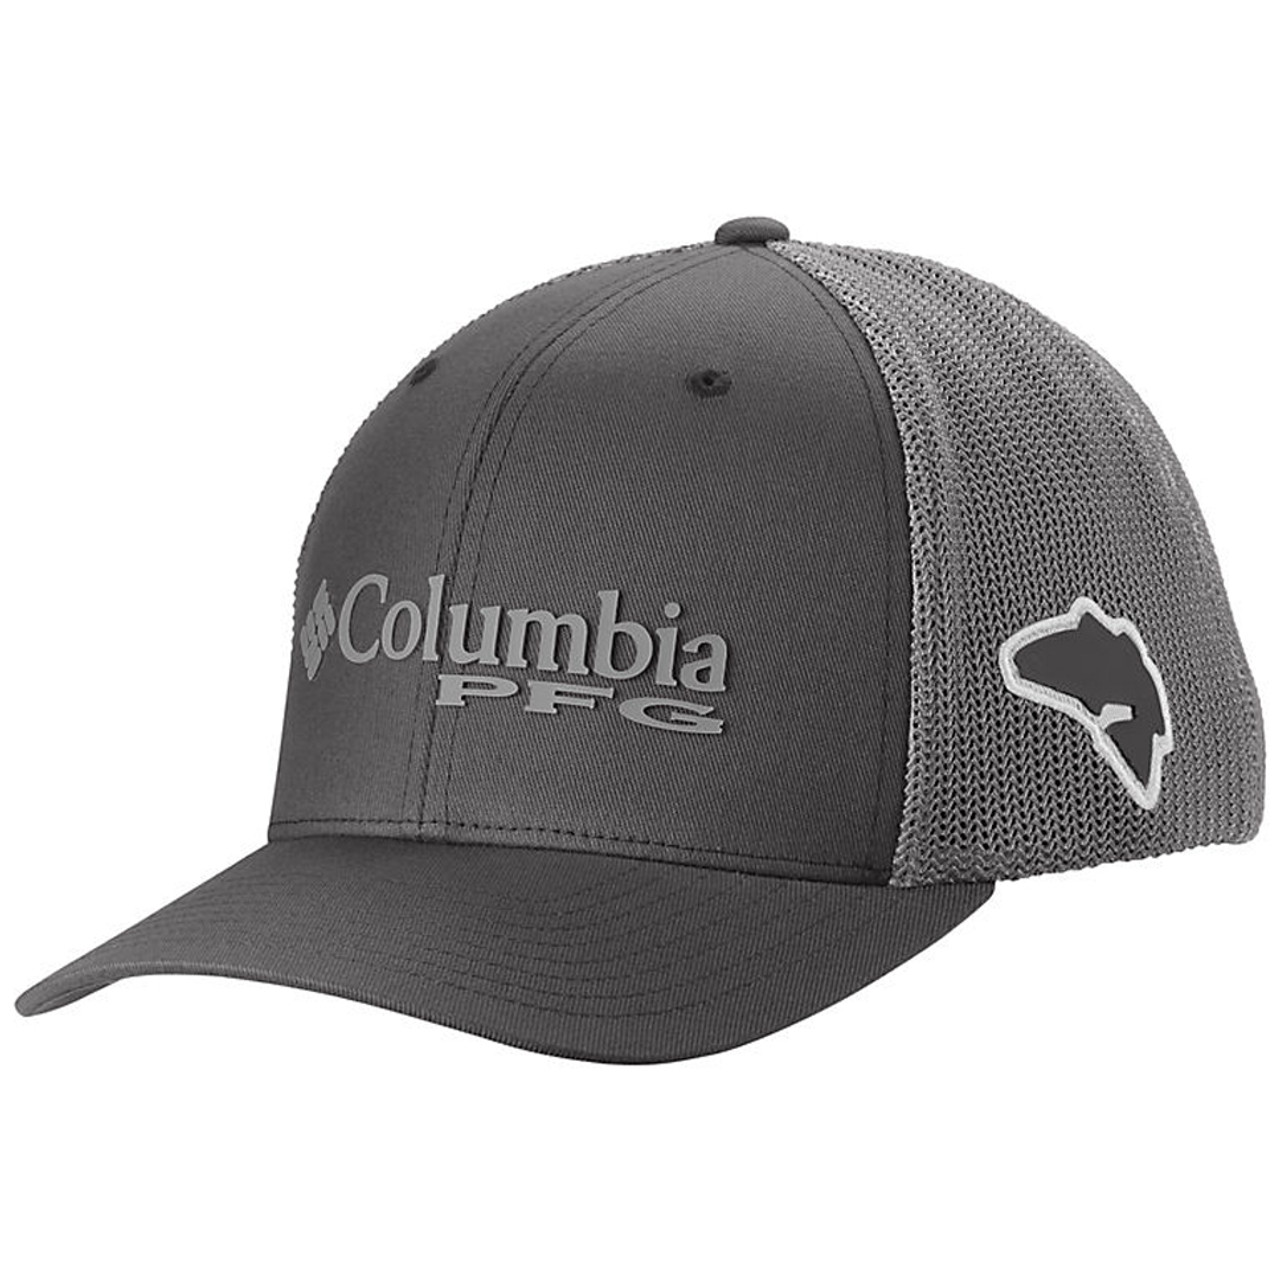 Columbia Mens Pfg Mesh Ball Cap Collegiate Navy Small//Medium New